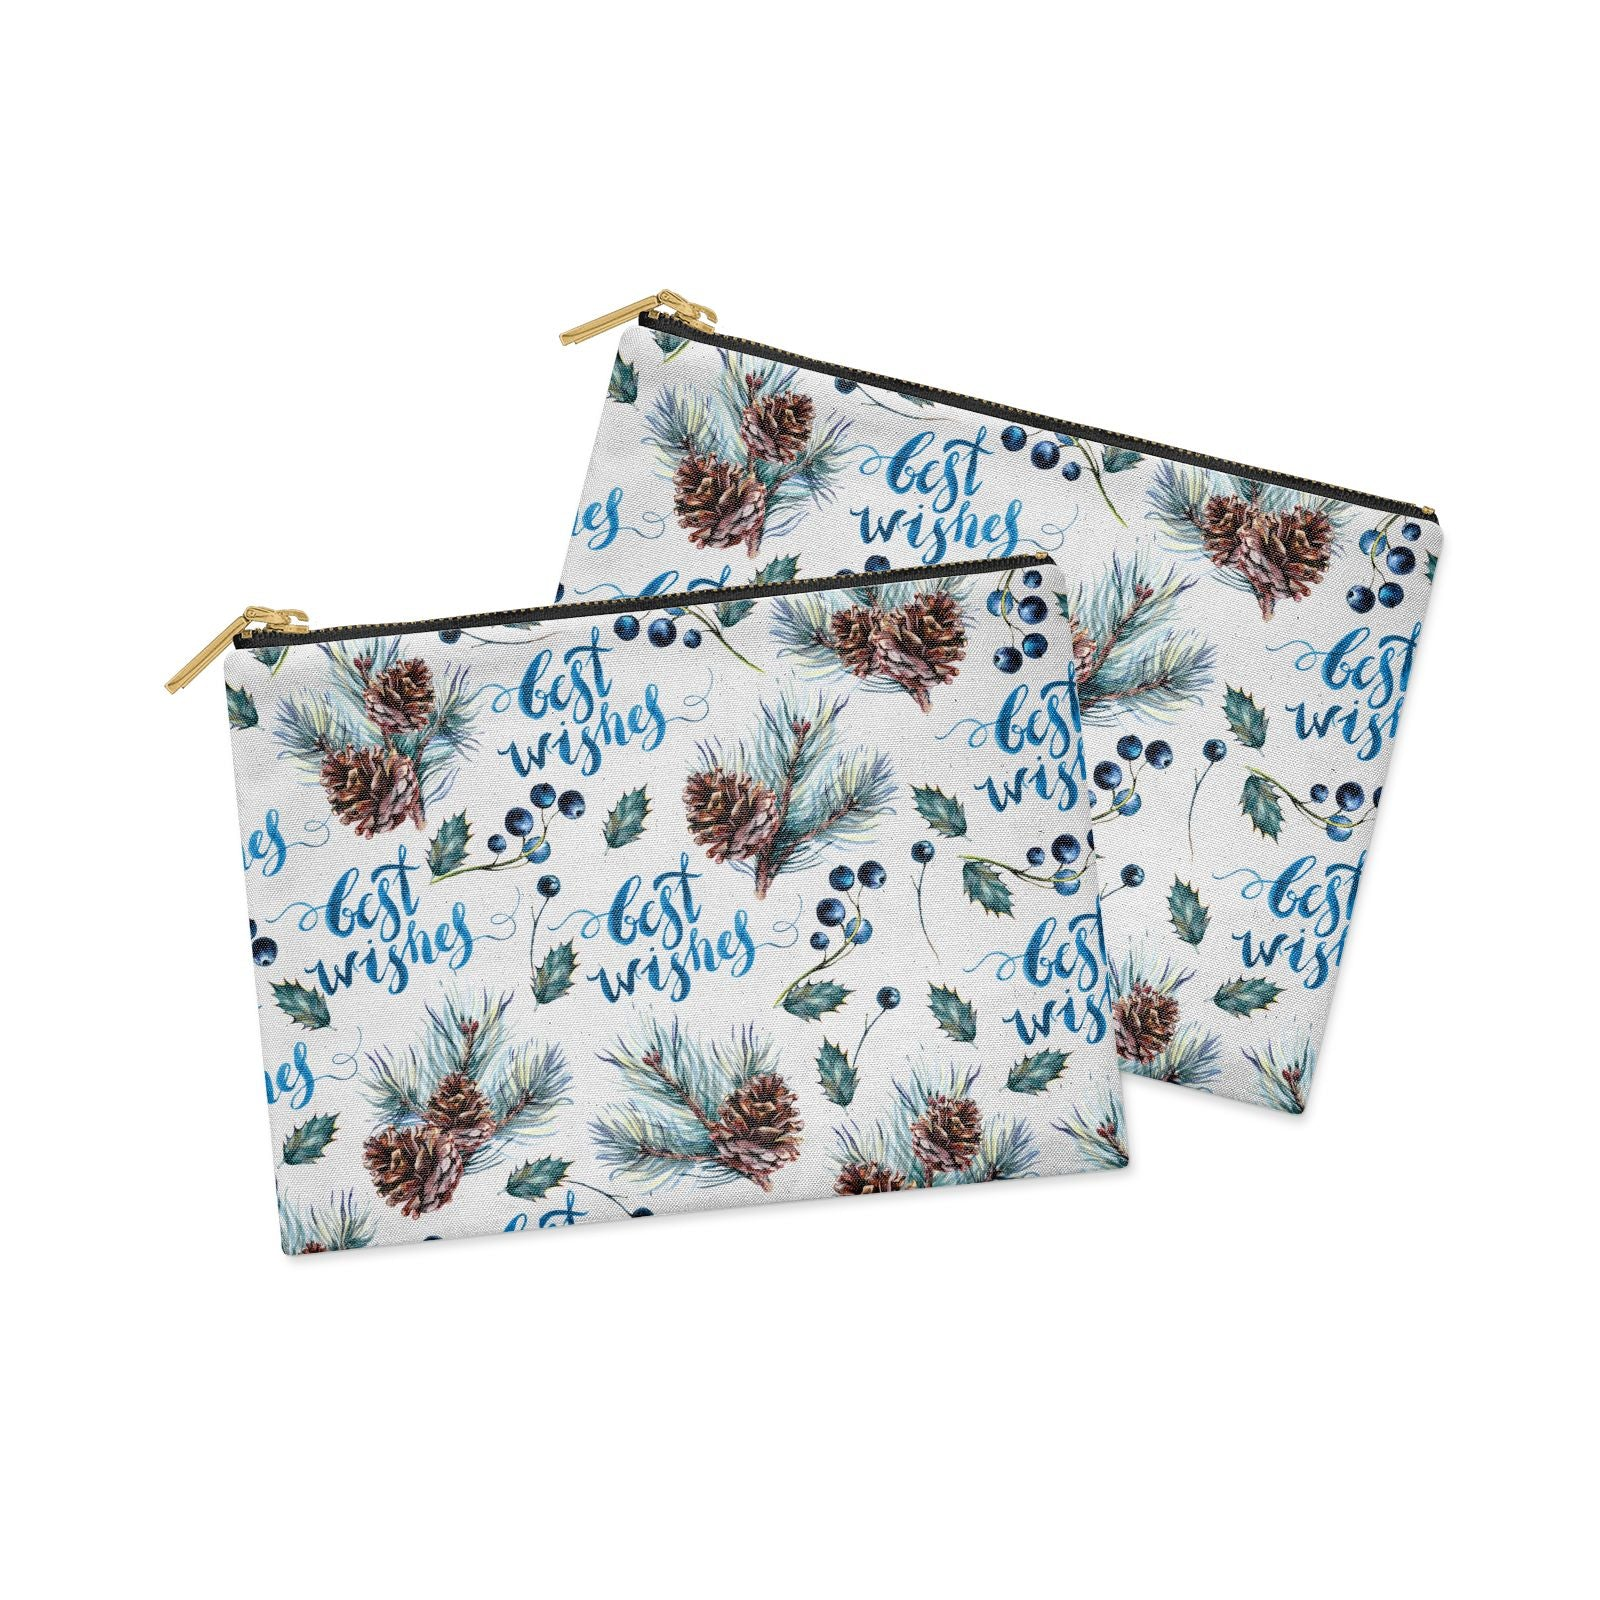 Pine cones wild berries Clutch Bag Zipper Pouch Alternative View